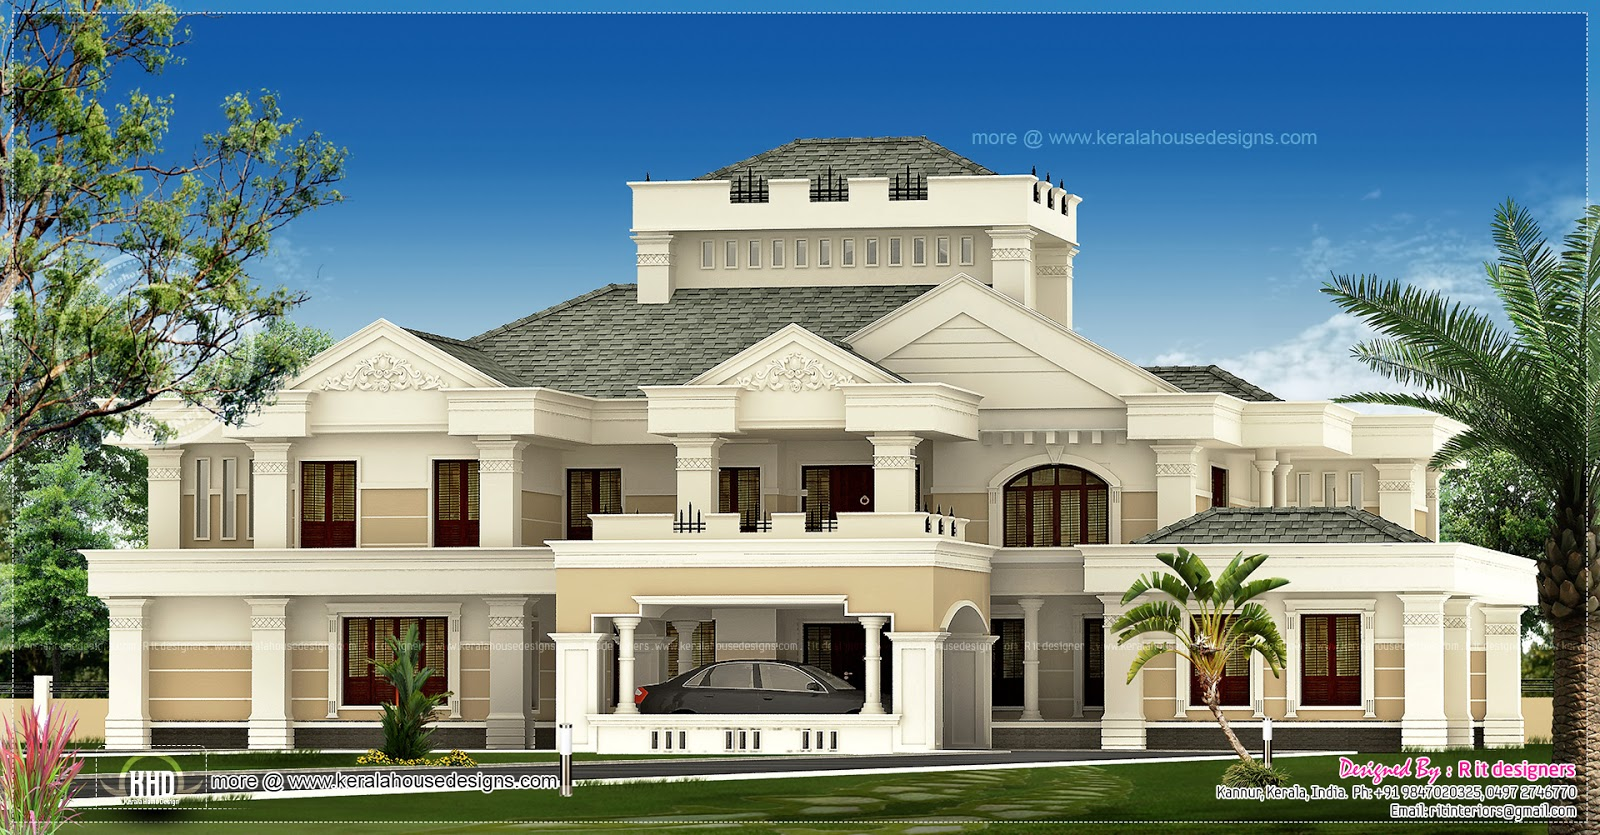 Super luxury kerala house exterior kerala home design and floor plans - Luxery home plans gallery ...